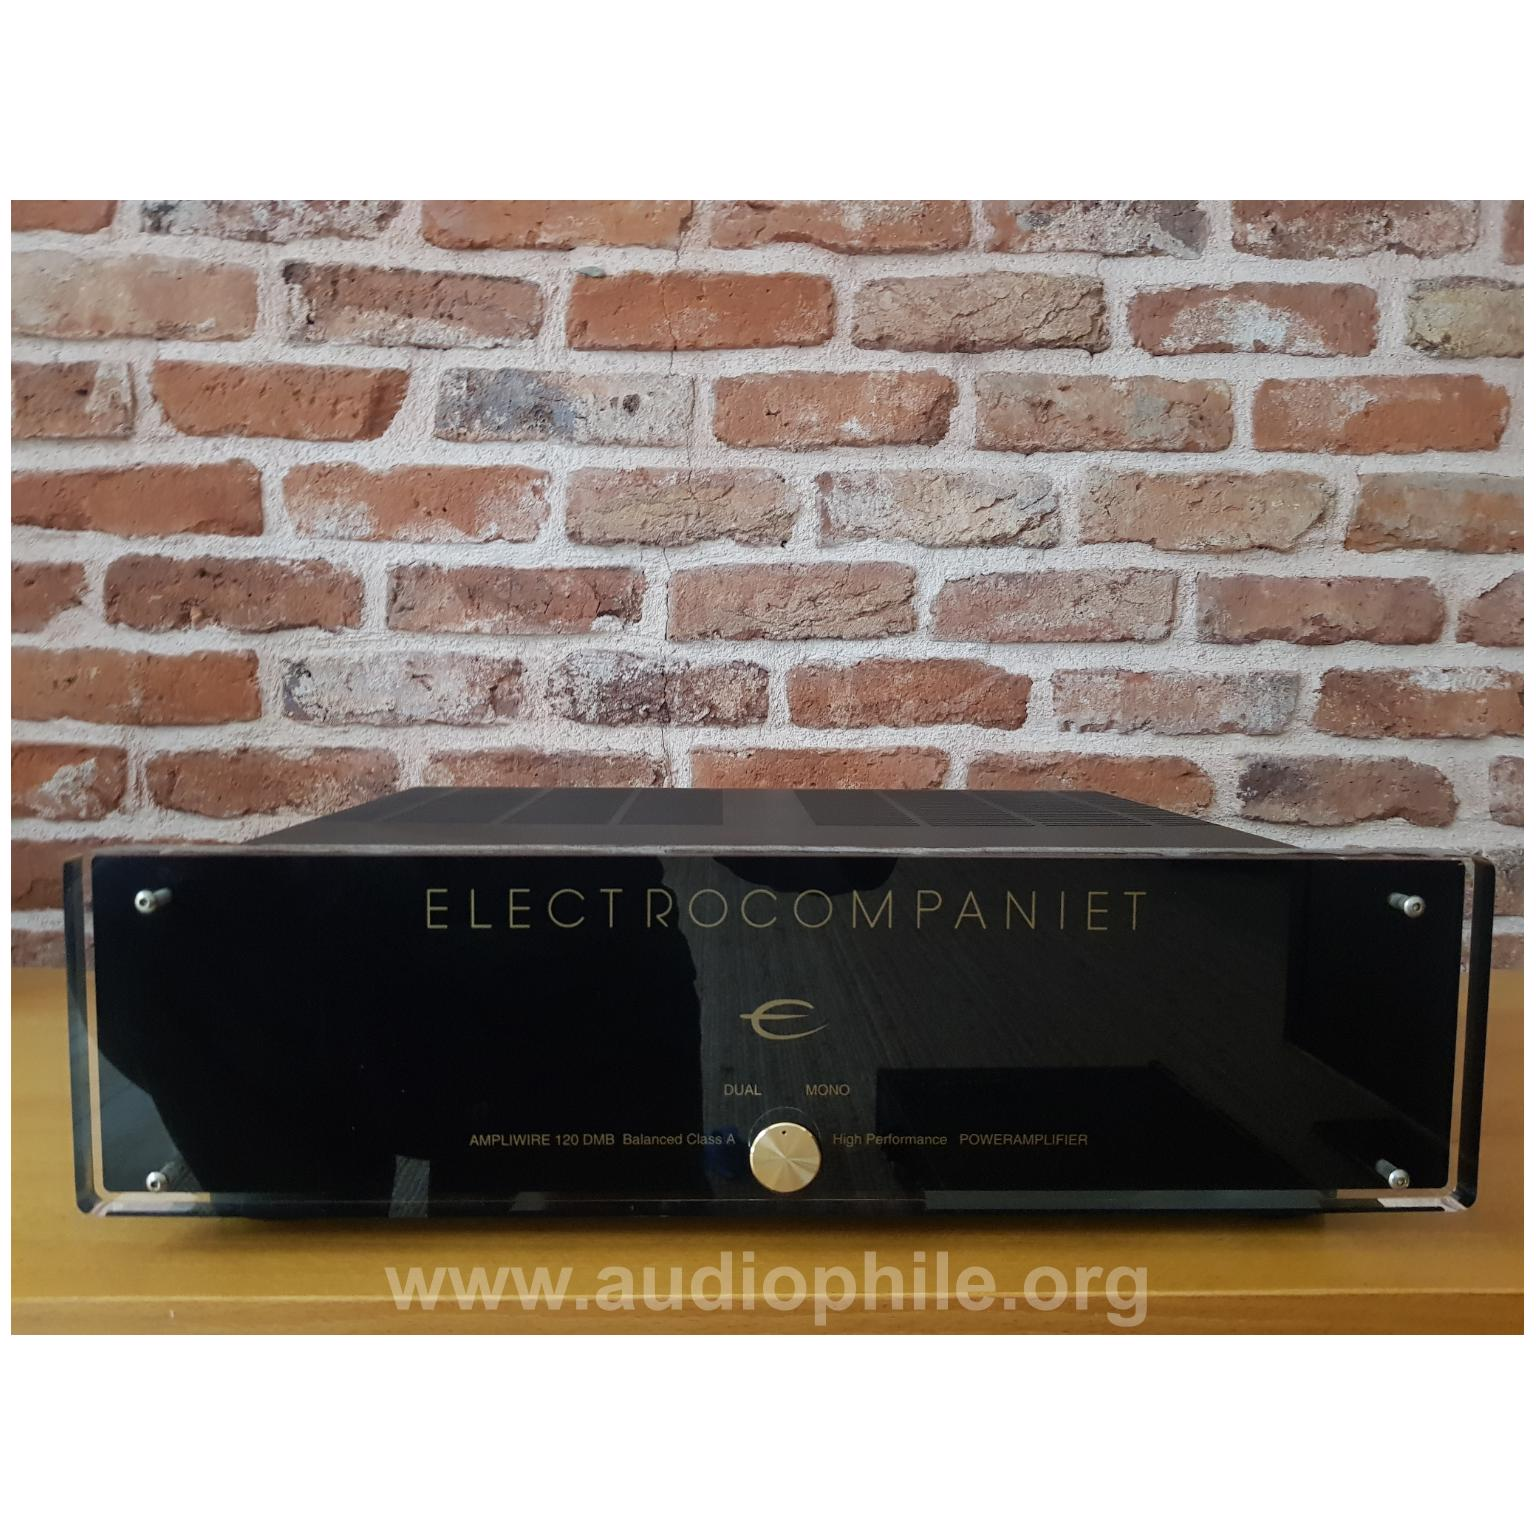 Electrocompaniet 120 dmb balanced class a power amplifier